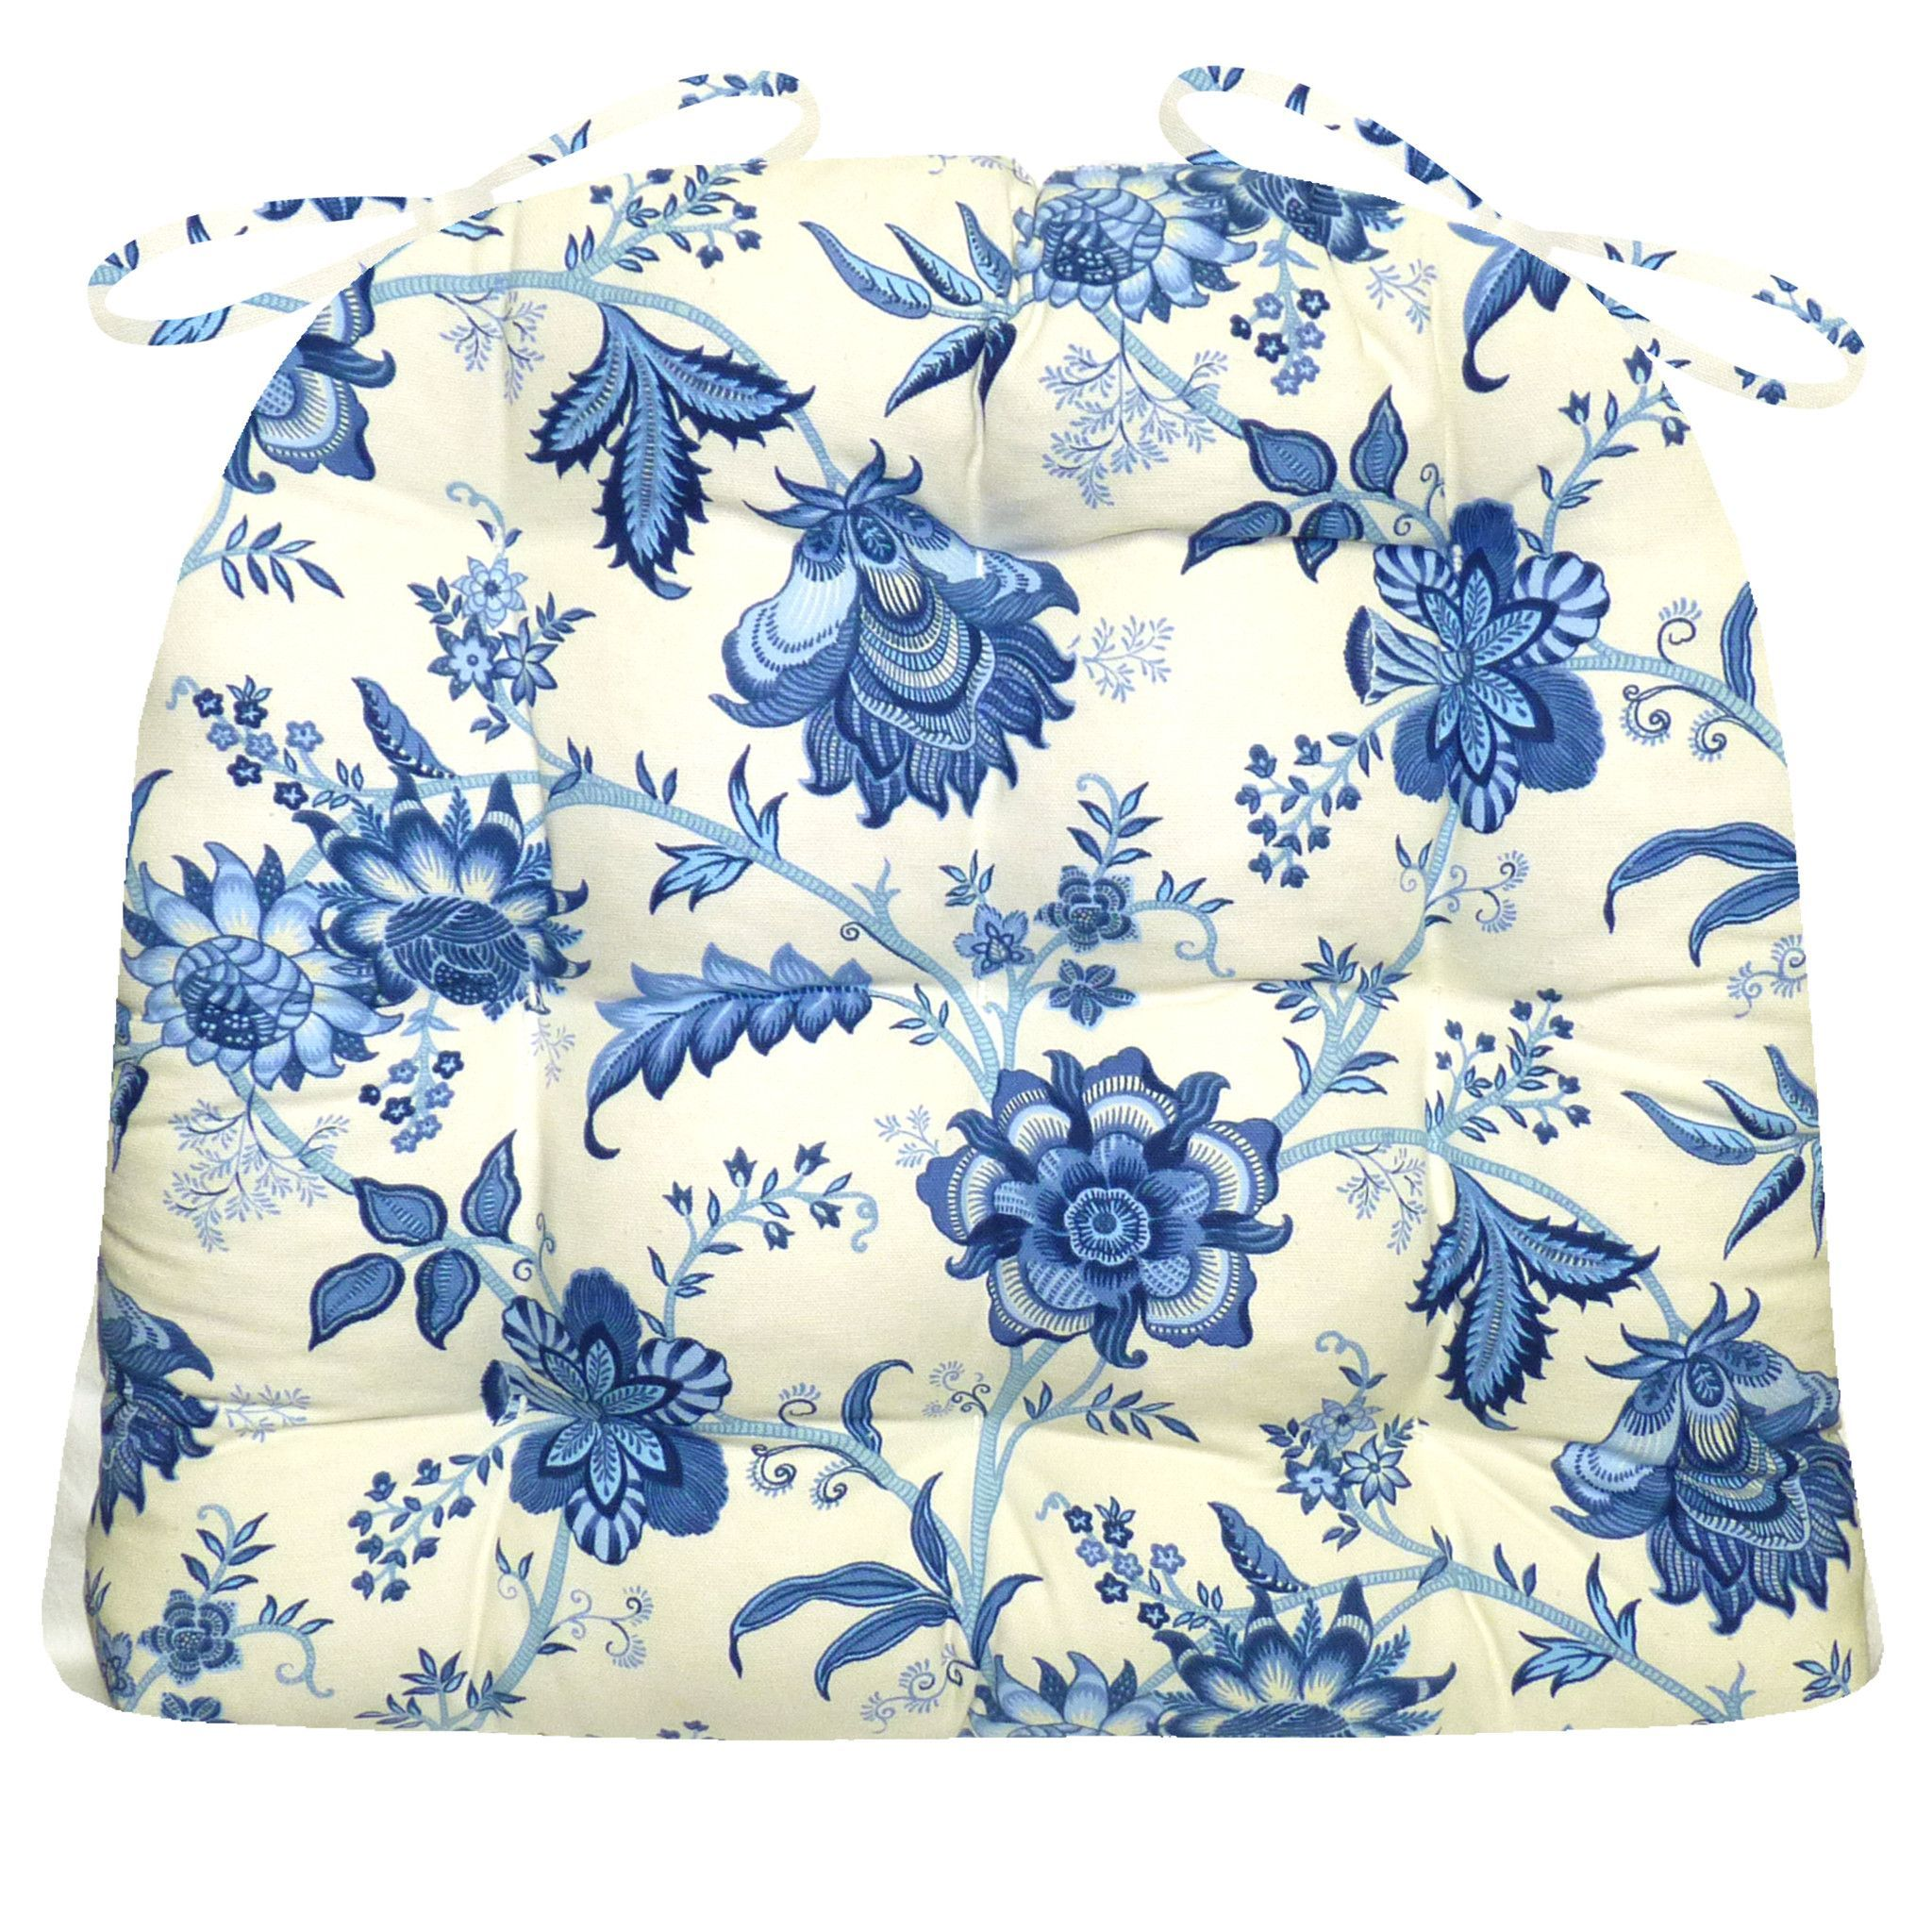 Traditional China Patterns jacobean gem blue colonial floral print dining chair pads - latex